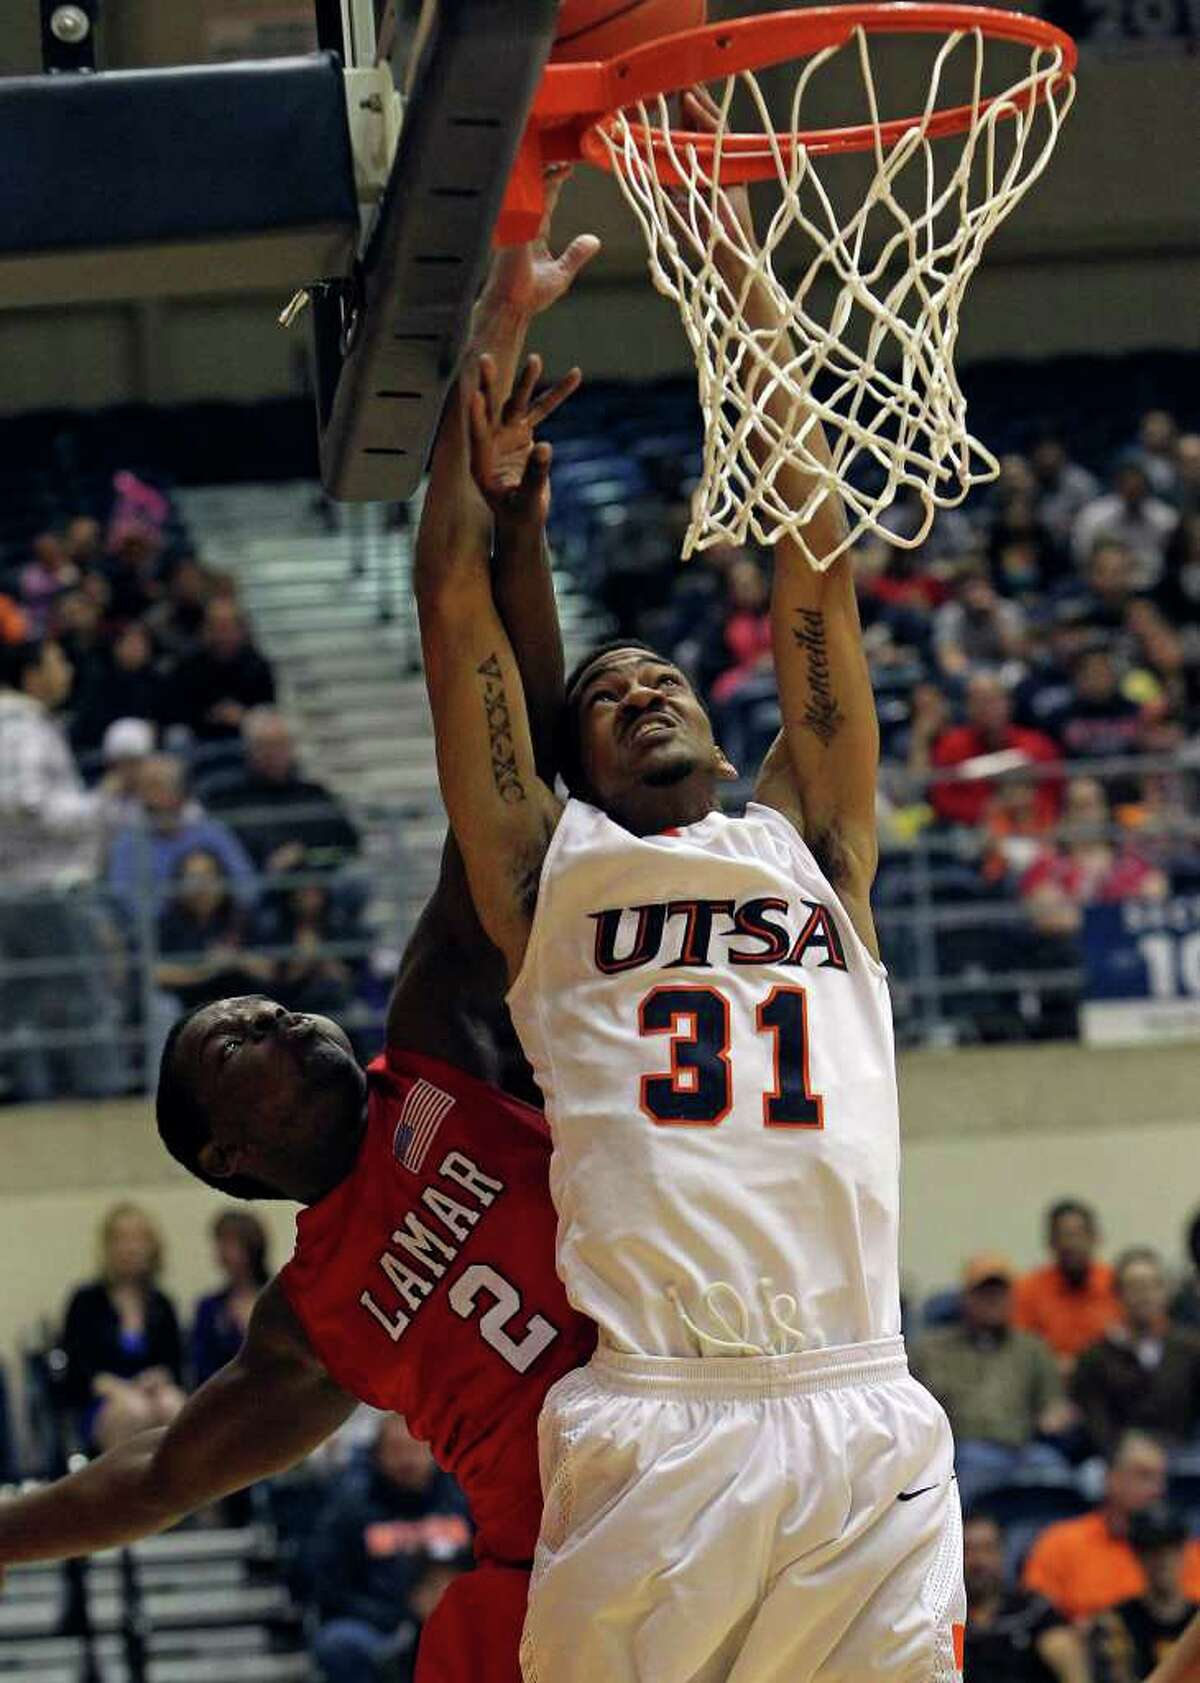 SPORTS Roadrunner forward Melvin Johnson gets the and one bucket against Tremell Adams as UTSA plays Lamar in mens' basketball at the UTSA Convocation Center on February 5, 2011. Tom Reel/Staff